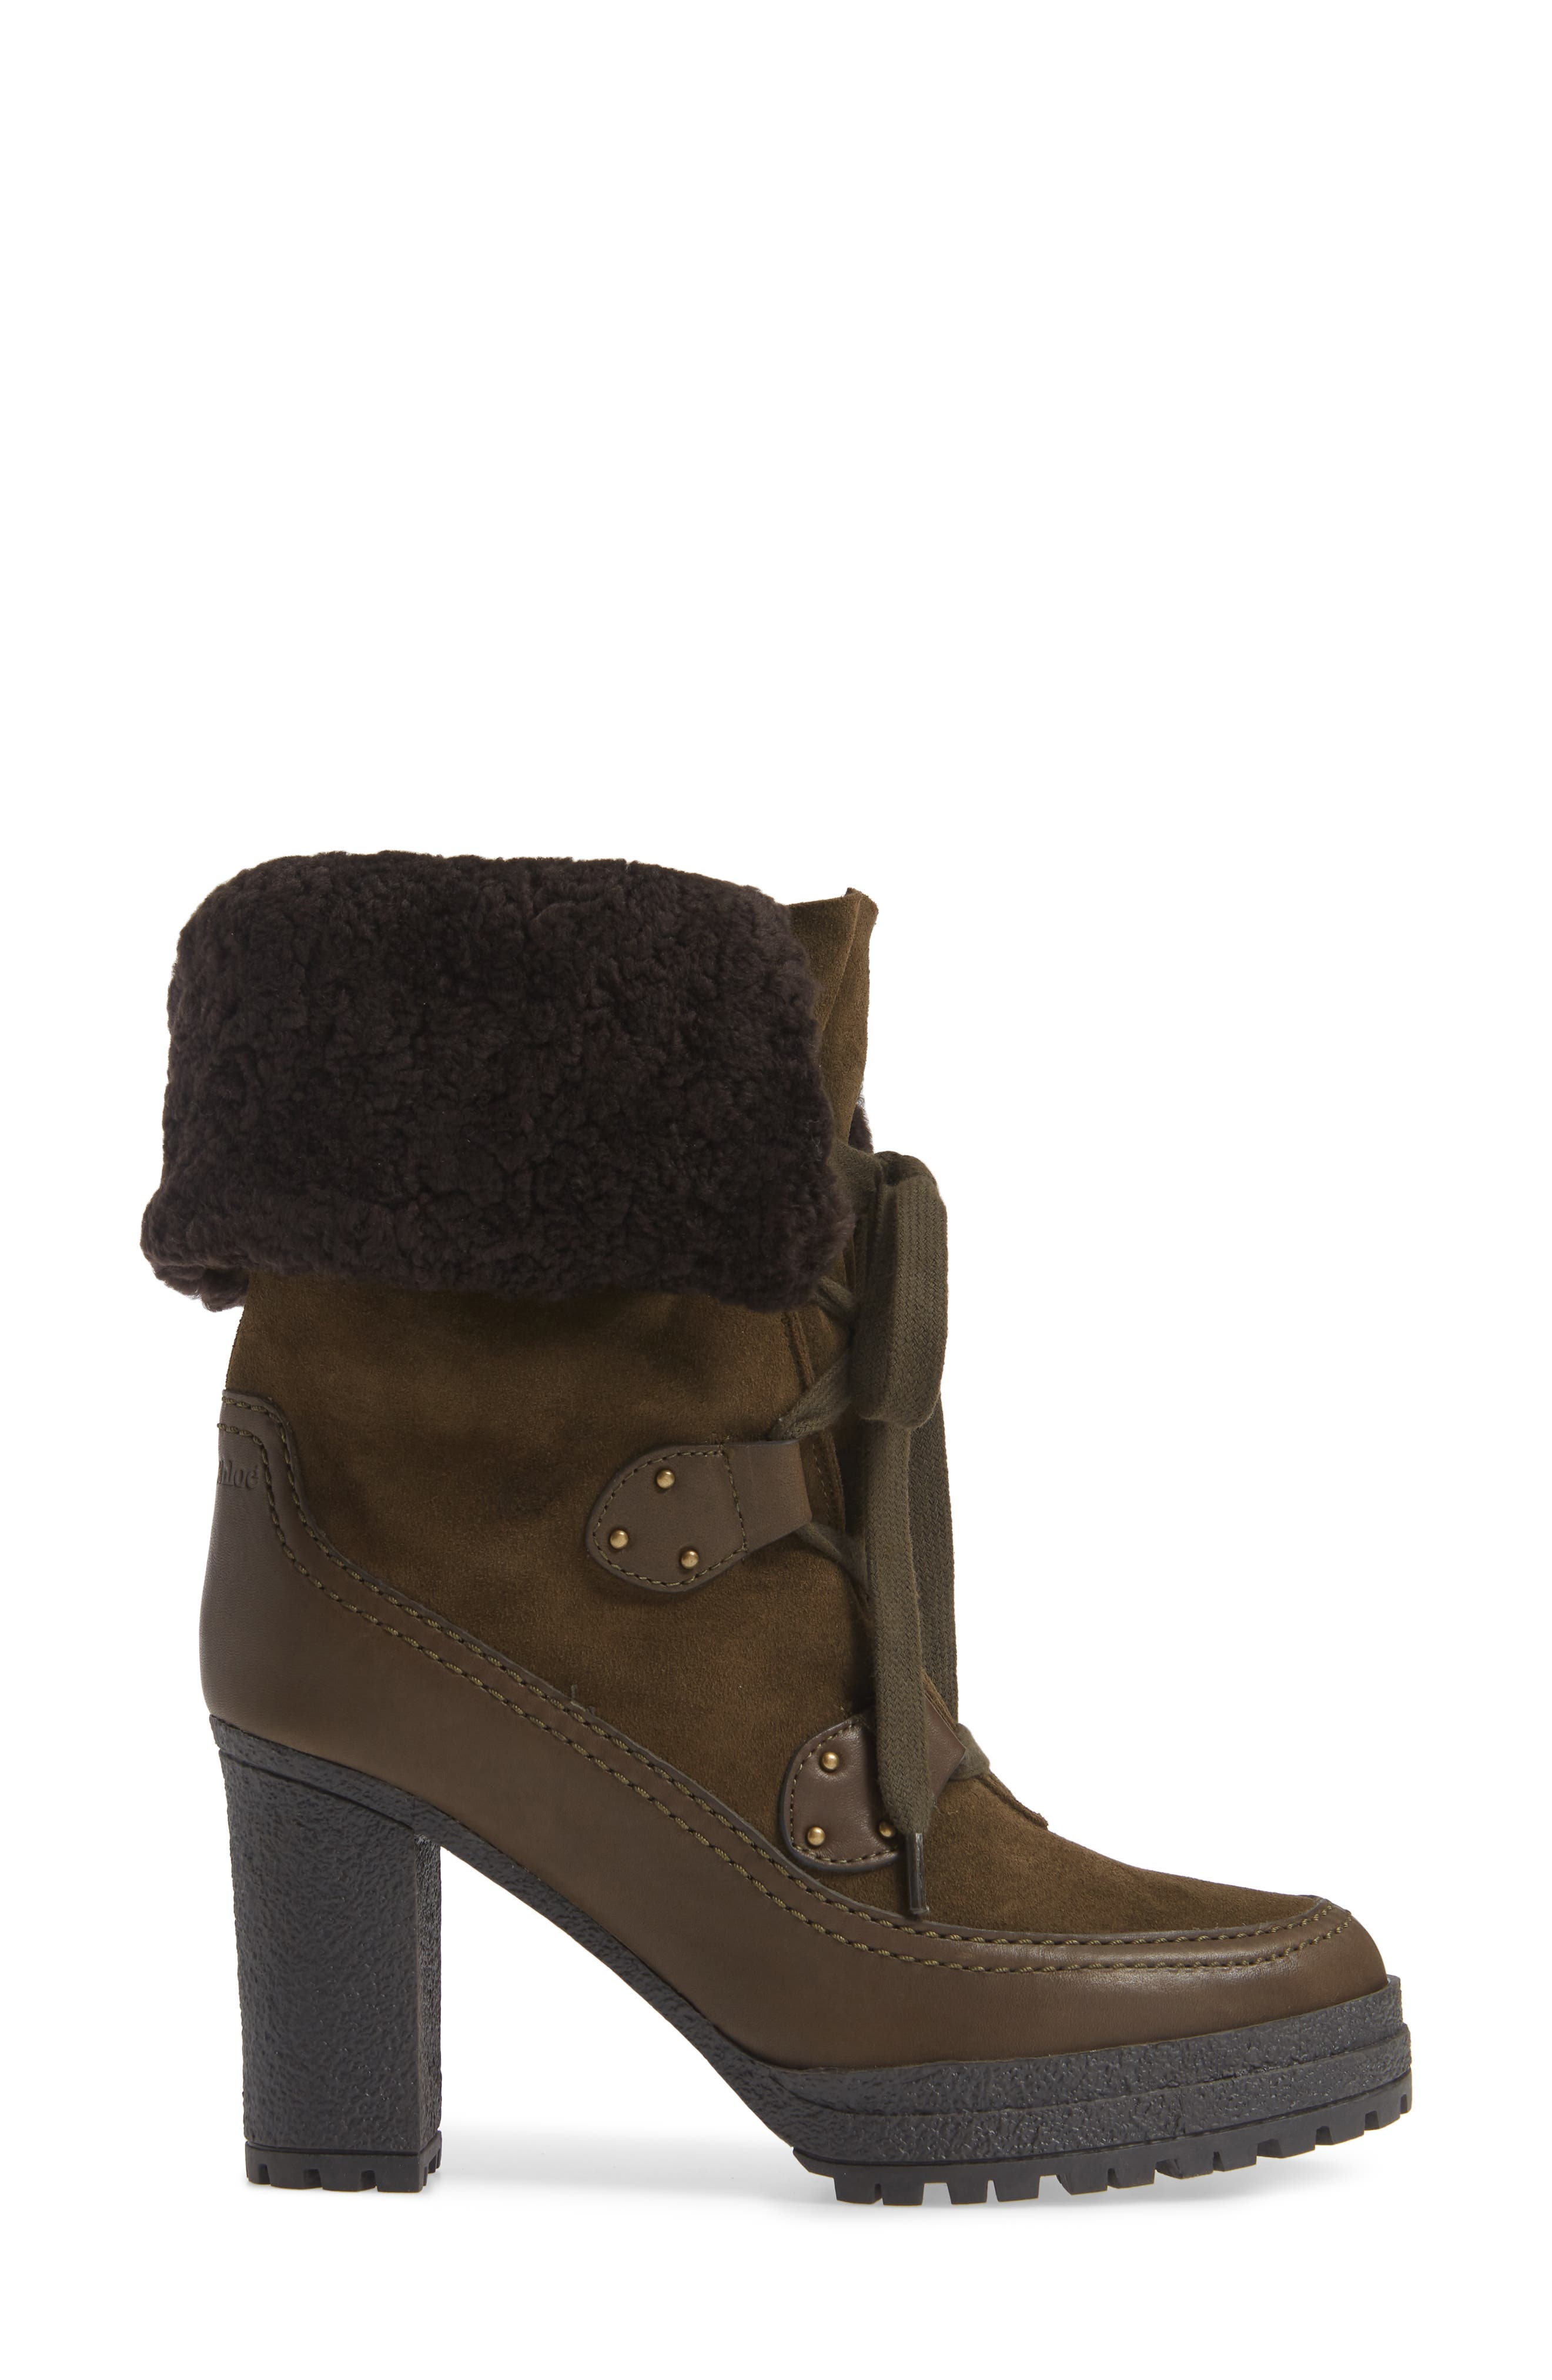 SEE BY CHLOÉ,                             Verena Shearling Cuff Bootie,                             Alternate thumbnail 3, color,                             300